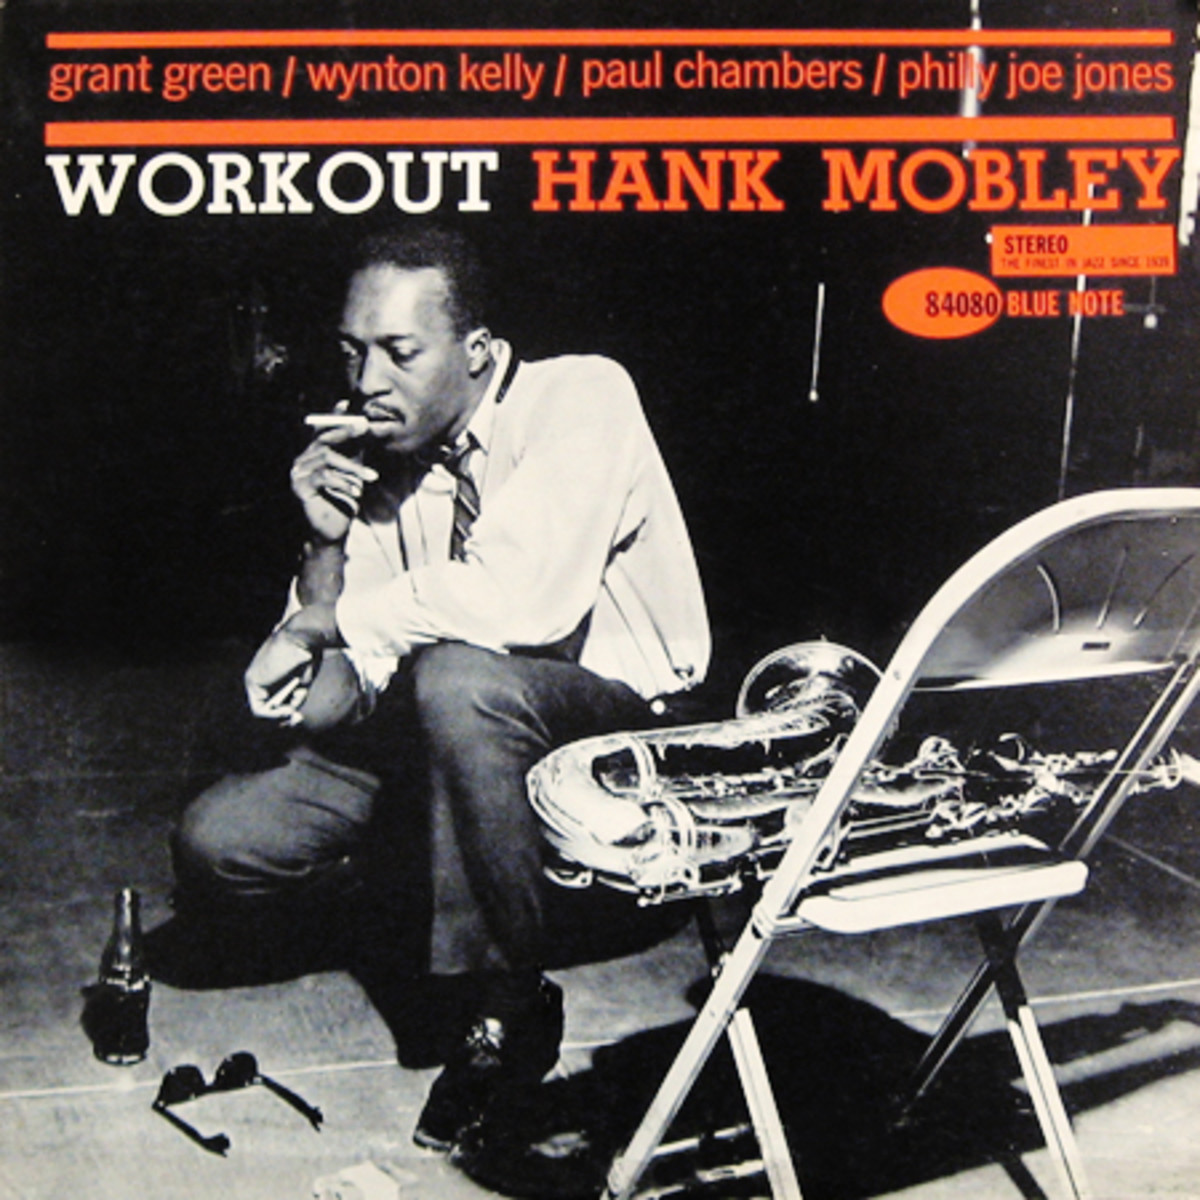 """Hank Mobley """"Workout"""" Blue Note Records 4080 12"""" LP Vinyl Record (1961) Album Cover Design by Reid Miles, Photo by Francis Wolff"""